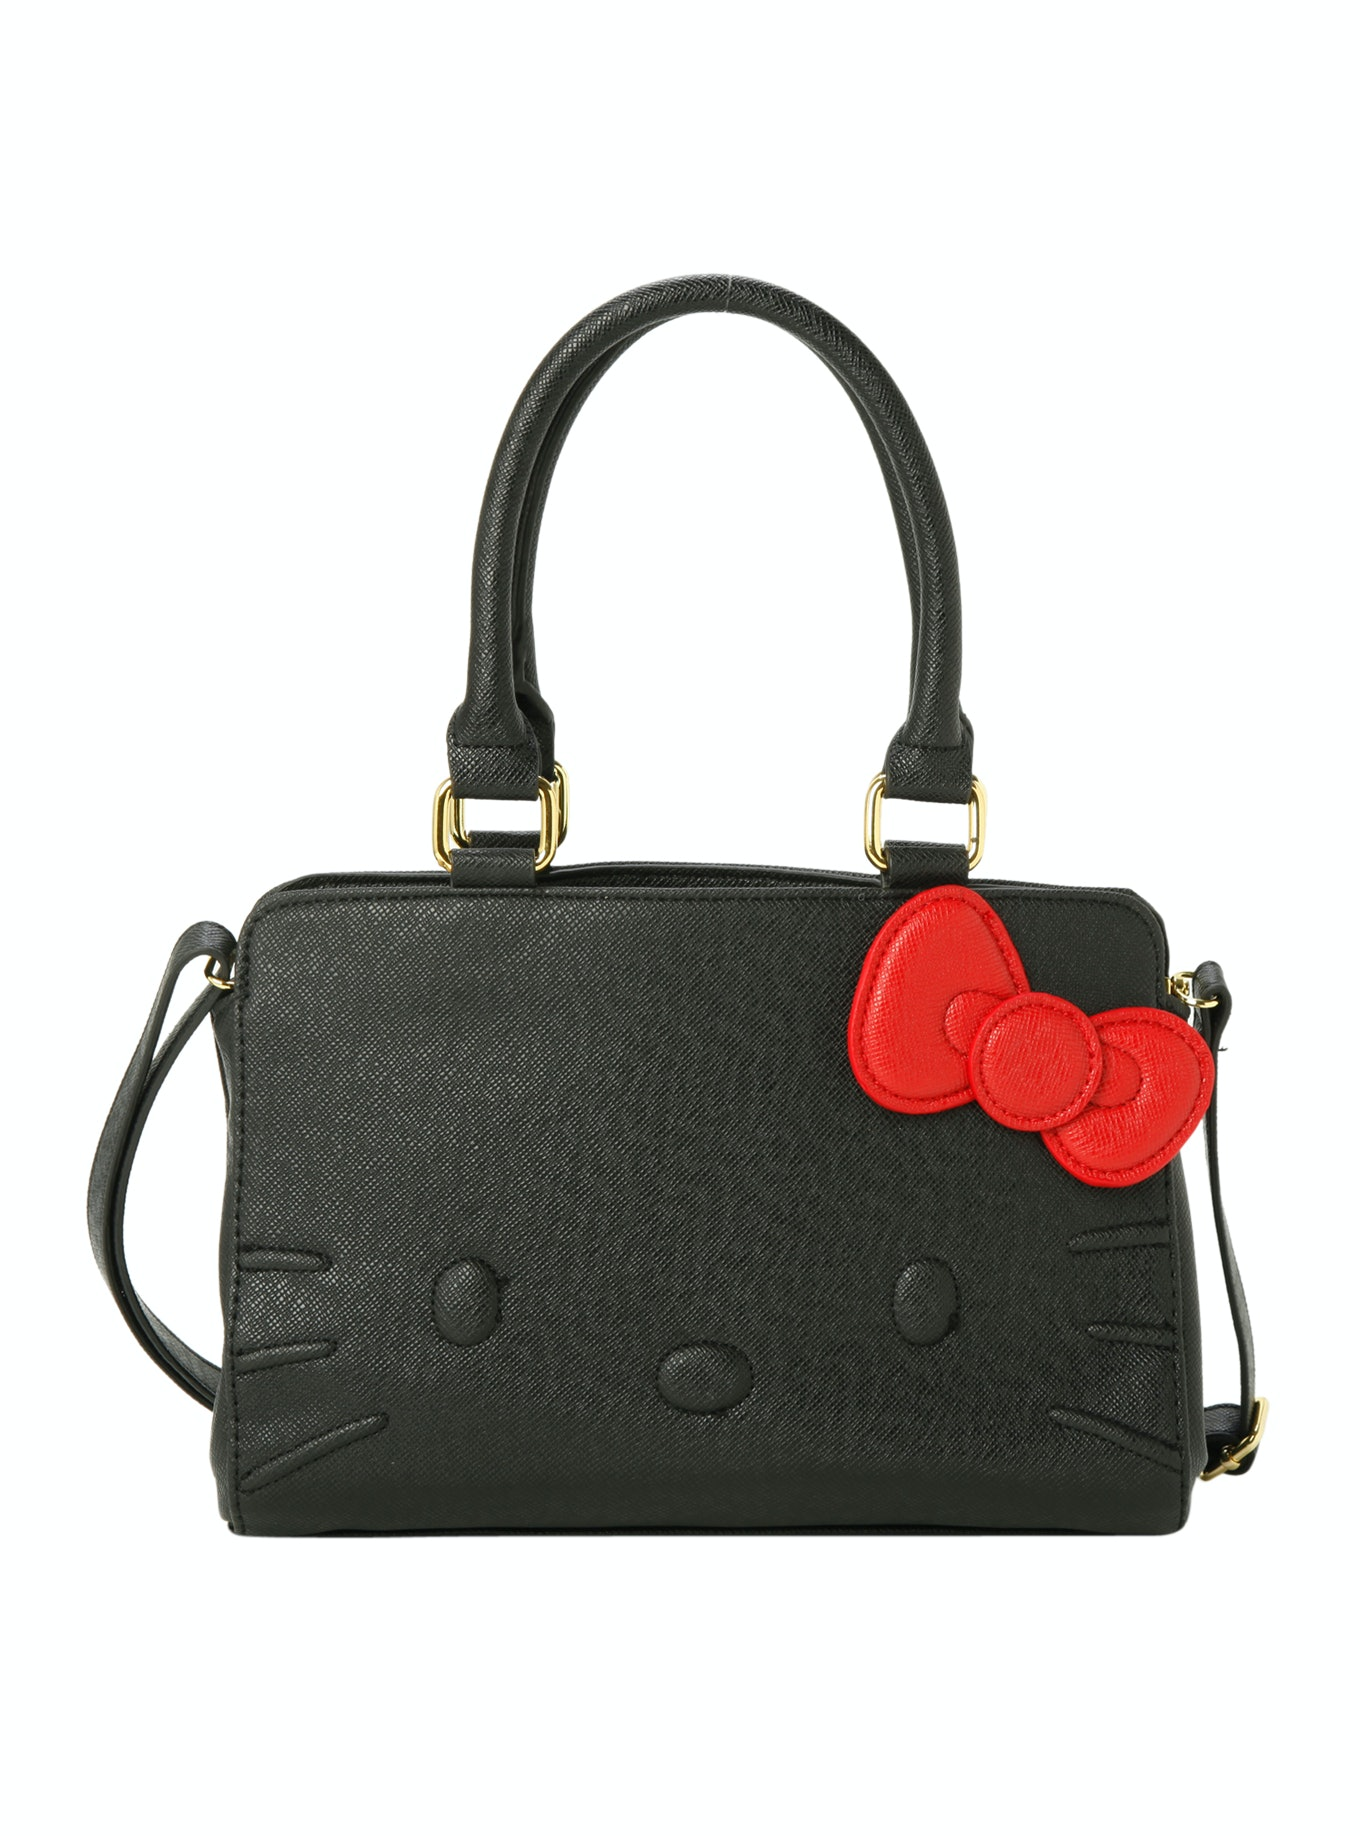 5b8018621fd5 13 Ways To Wear Hello Kitty Every Day Without Looking Like You re Sporting  A Costume